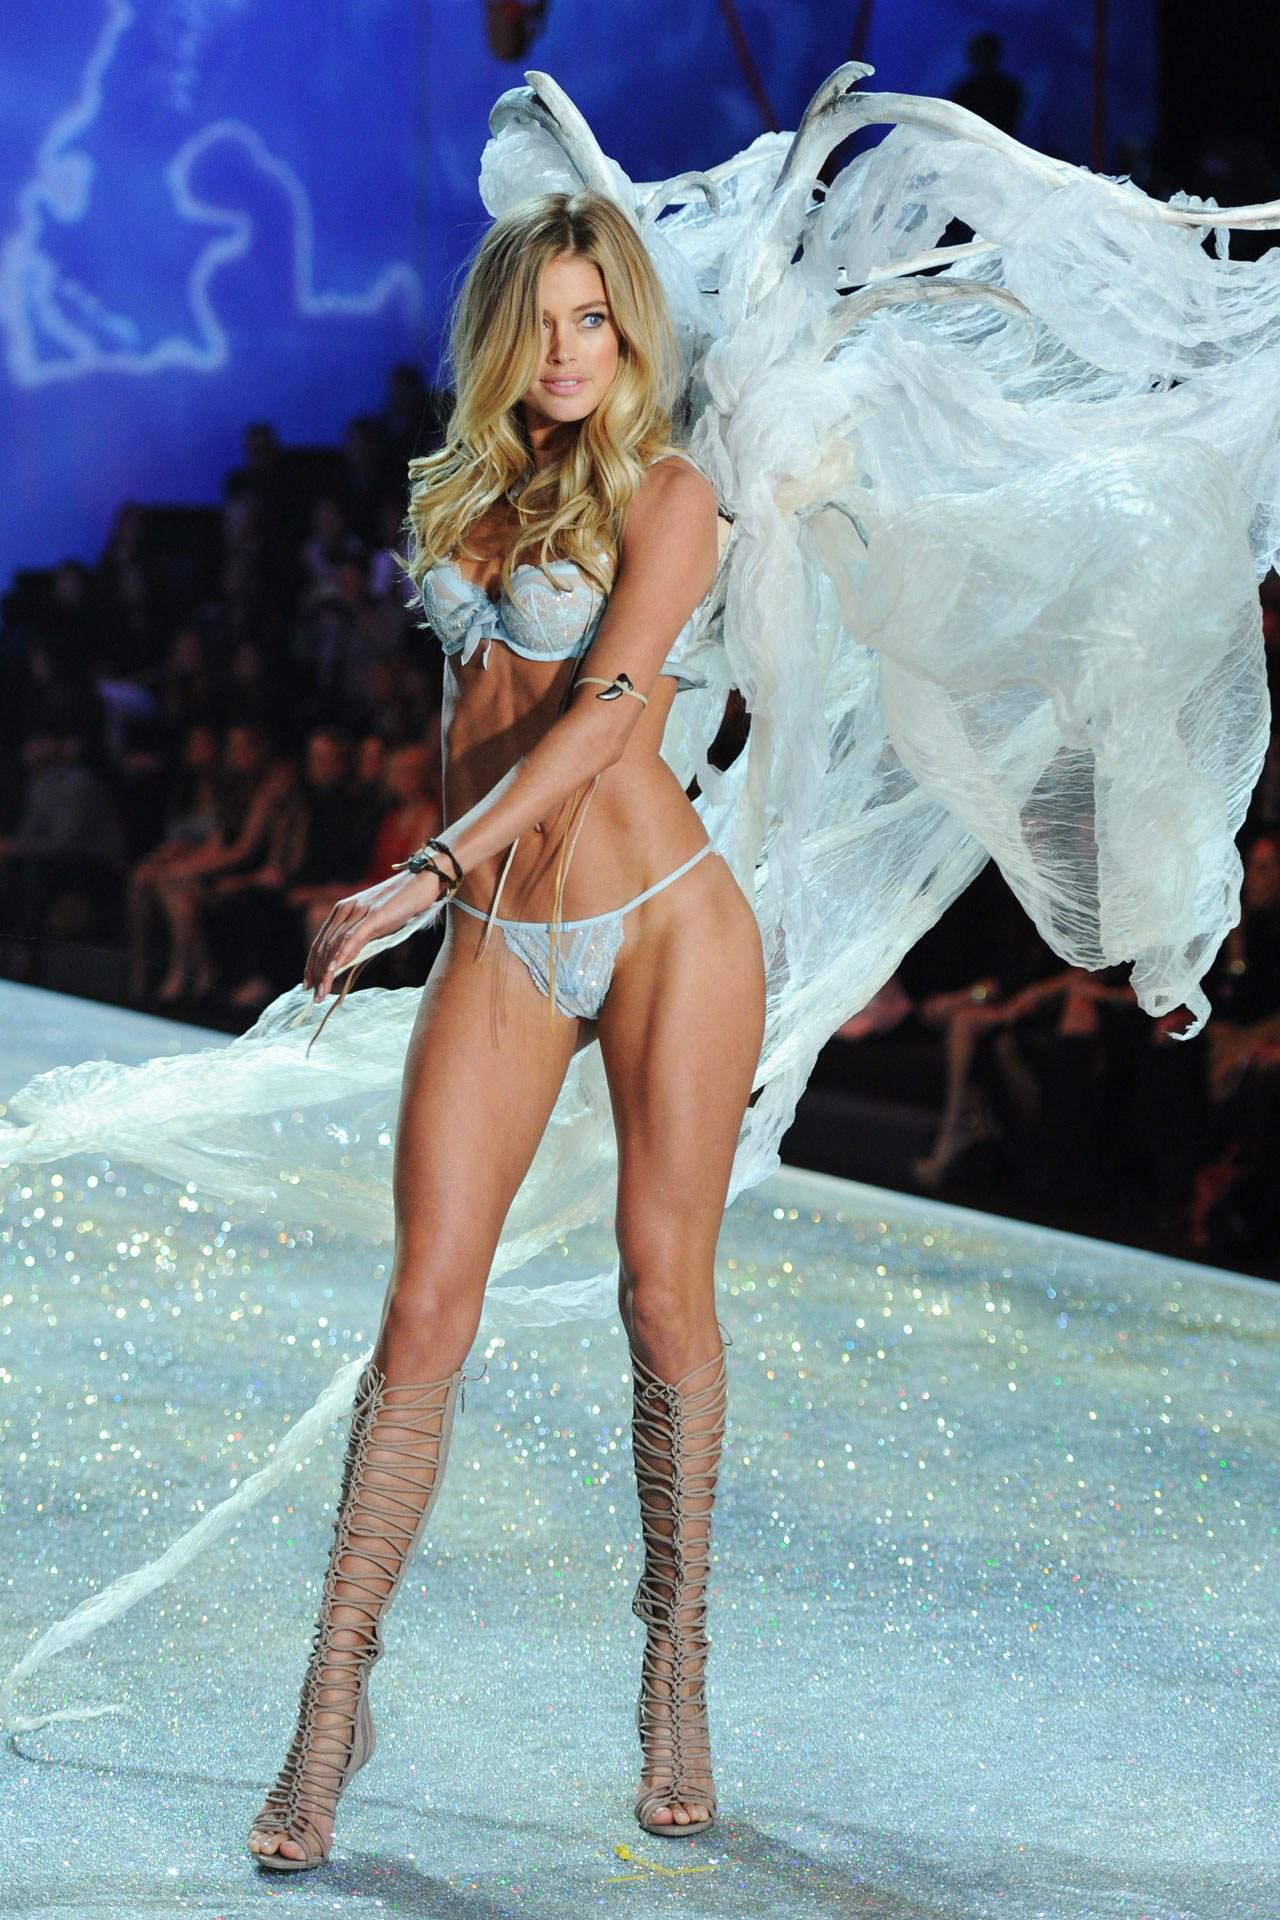 How to get a body like a Victoria's Secret Angel? The models themselves reveal all: http://t.co/3iwsSRhbPM http://t.co/Ki19I2sQvY